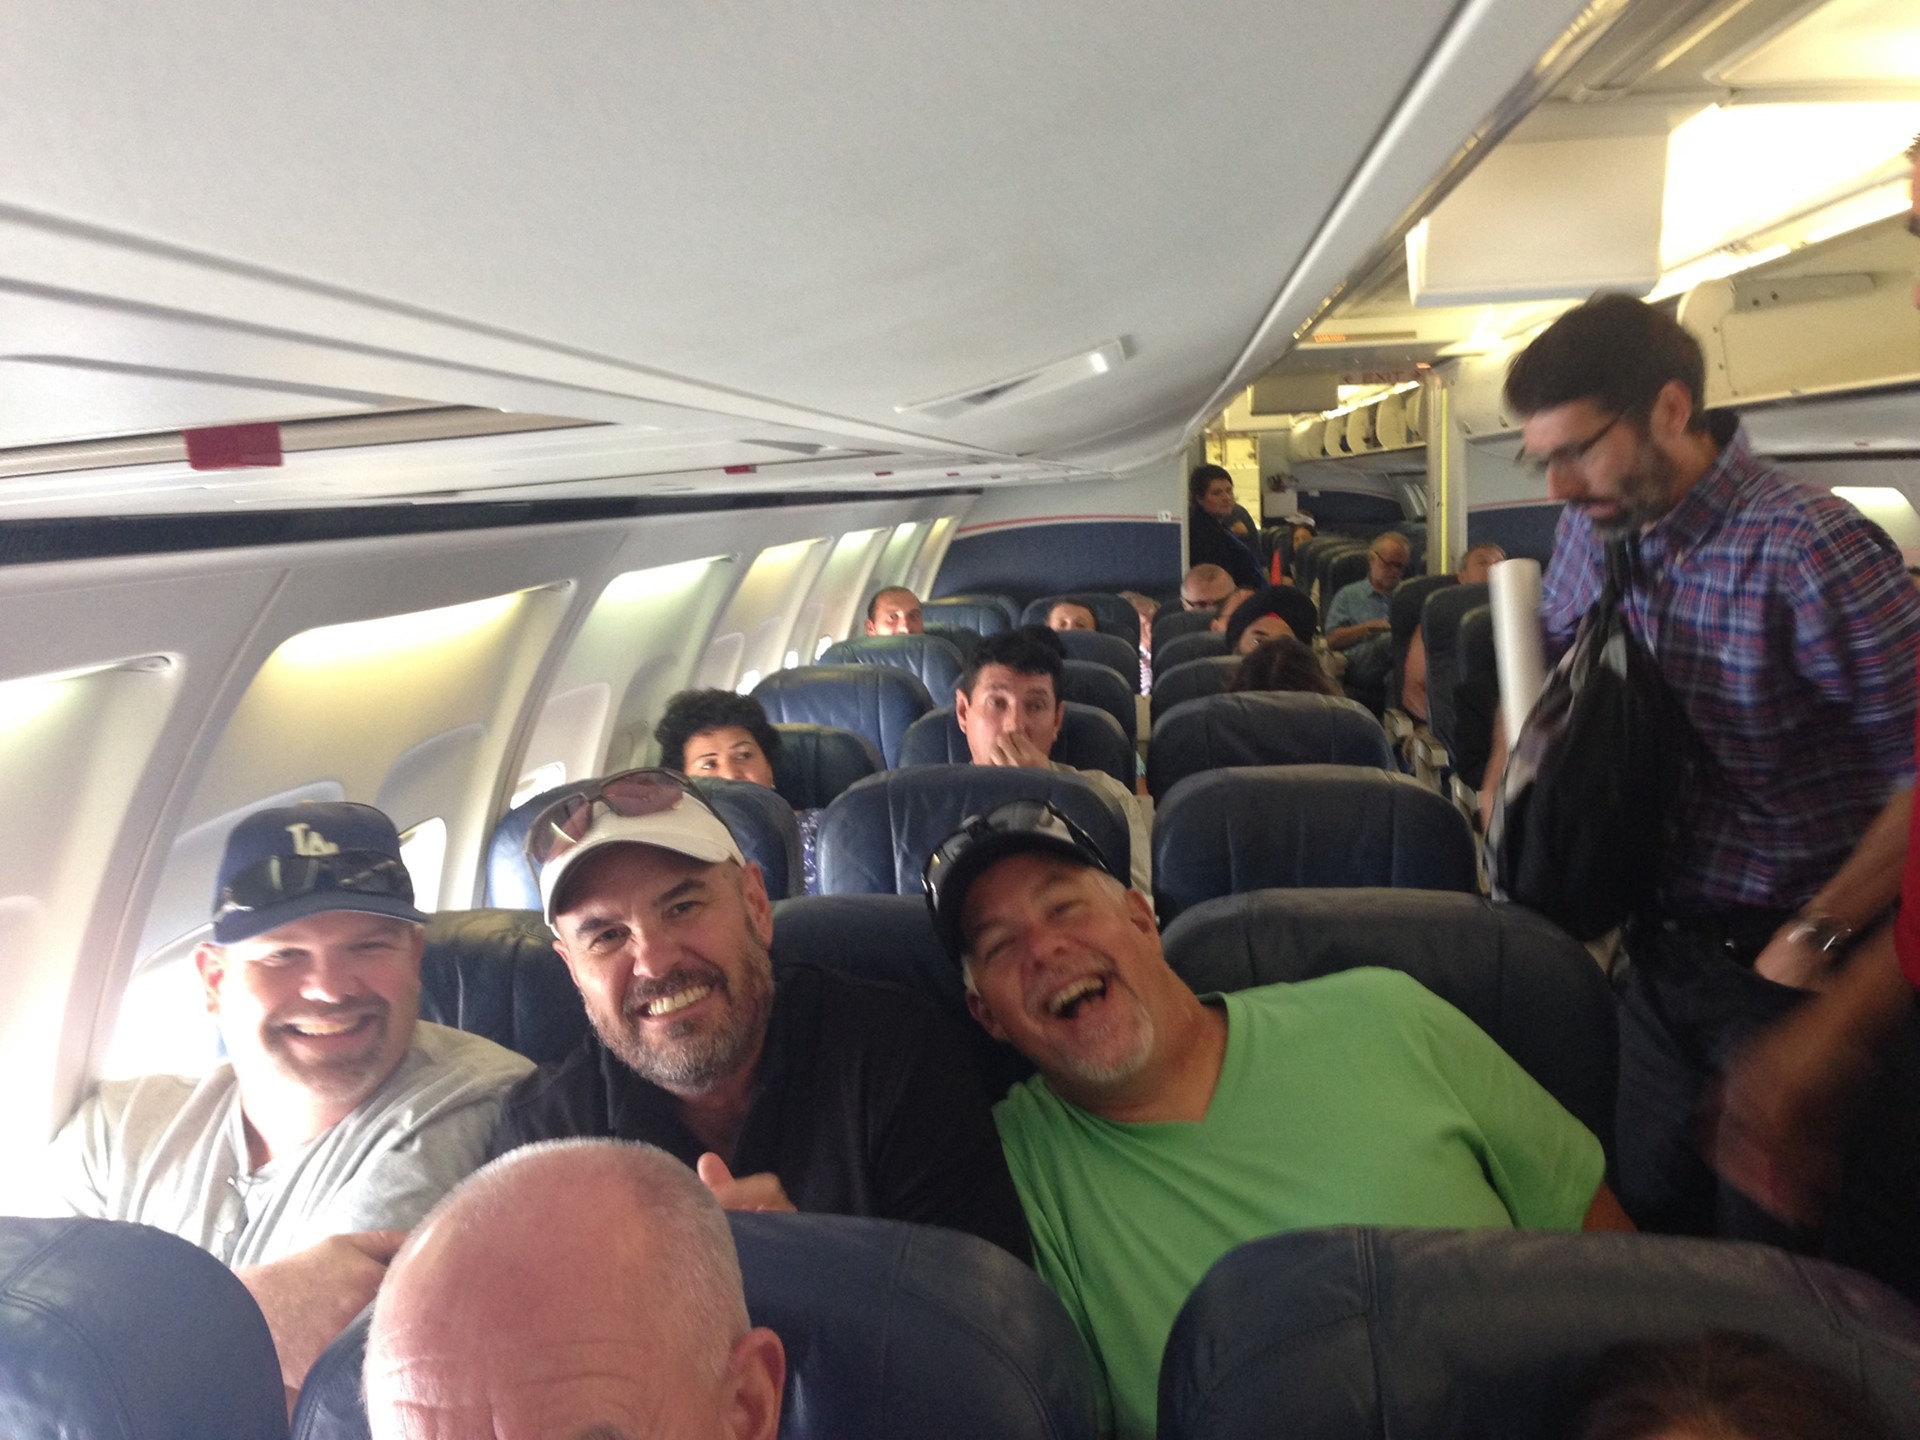 Brandt, Emmett, and Scott Squeeze into Small Plane Seat